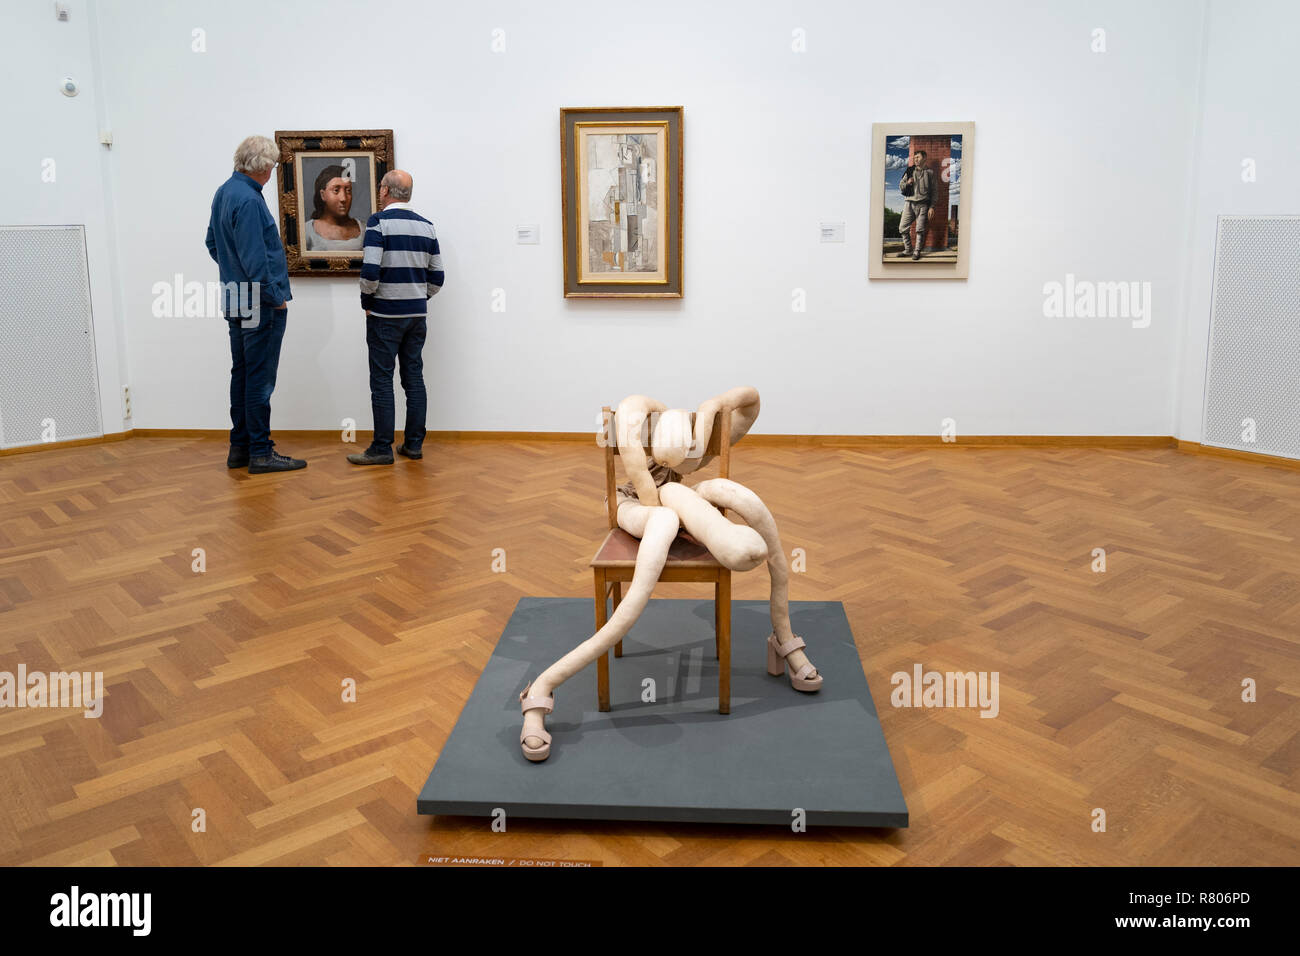 Sculpture Nobby Bloke by Sarah Lucas at the Gemeentemuseum in The Hague, Den Haag, The Netherlands - Stock Image